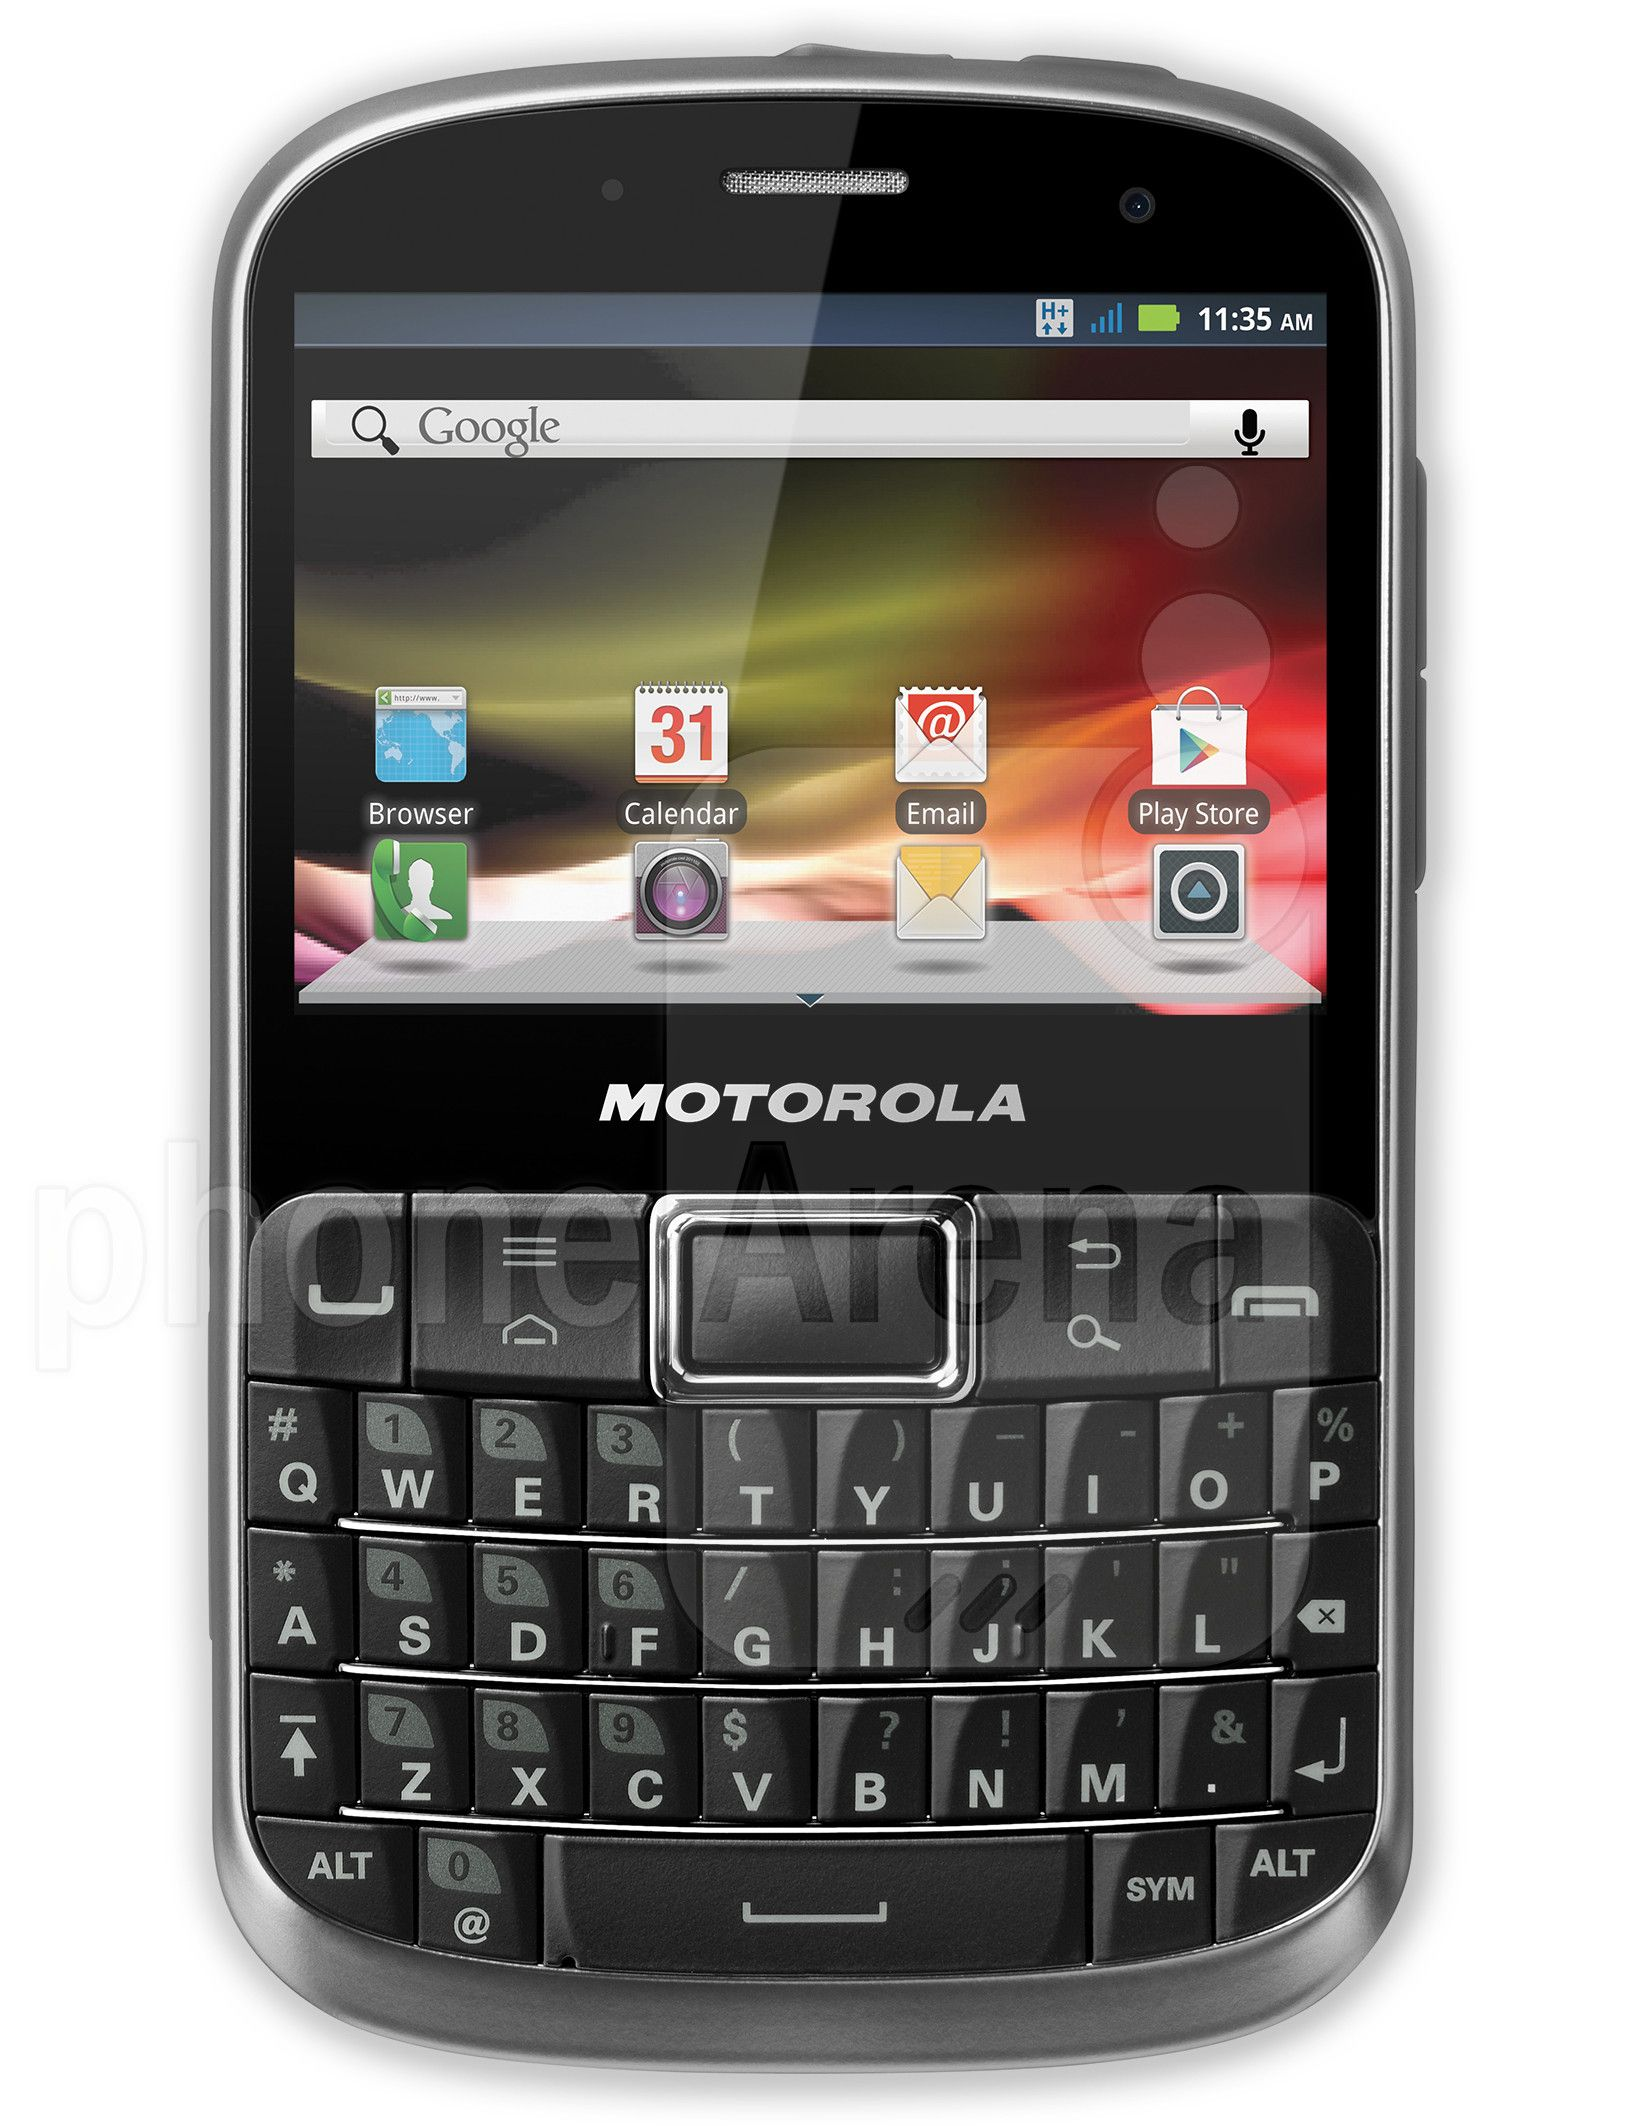 Motorola Defy Pro Finally A Rugged Water Resistant Android Device With Qwerty Keyboard